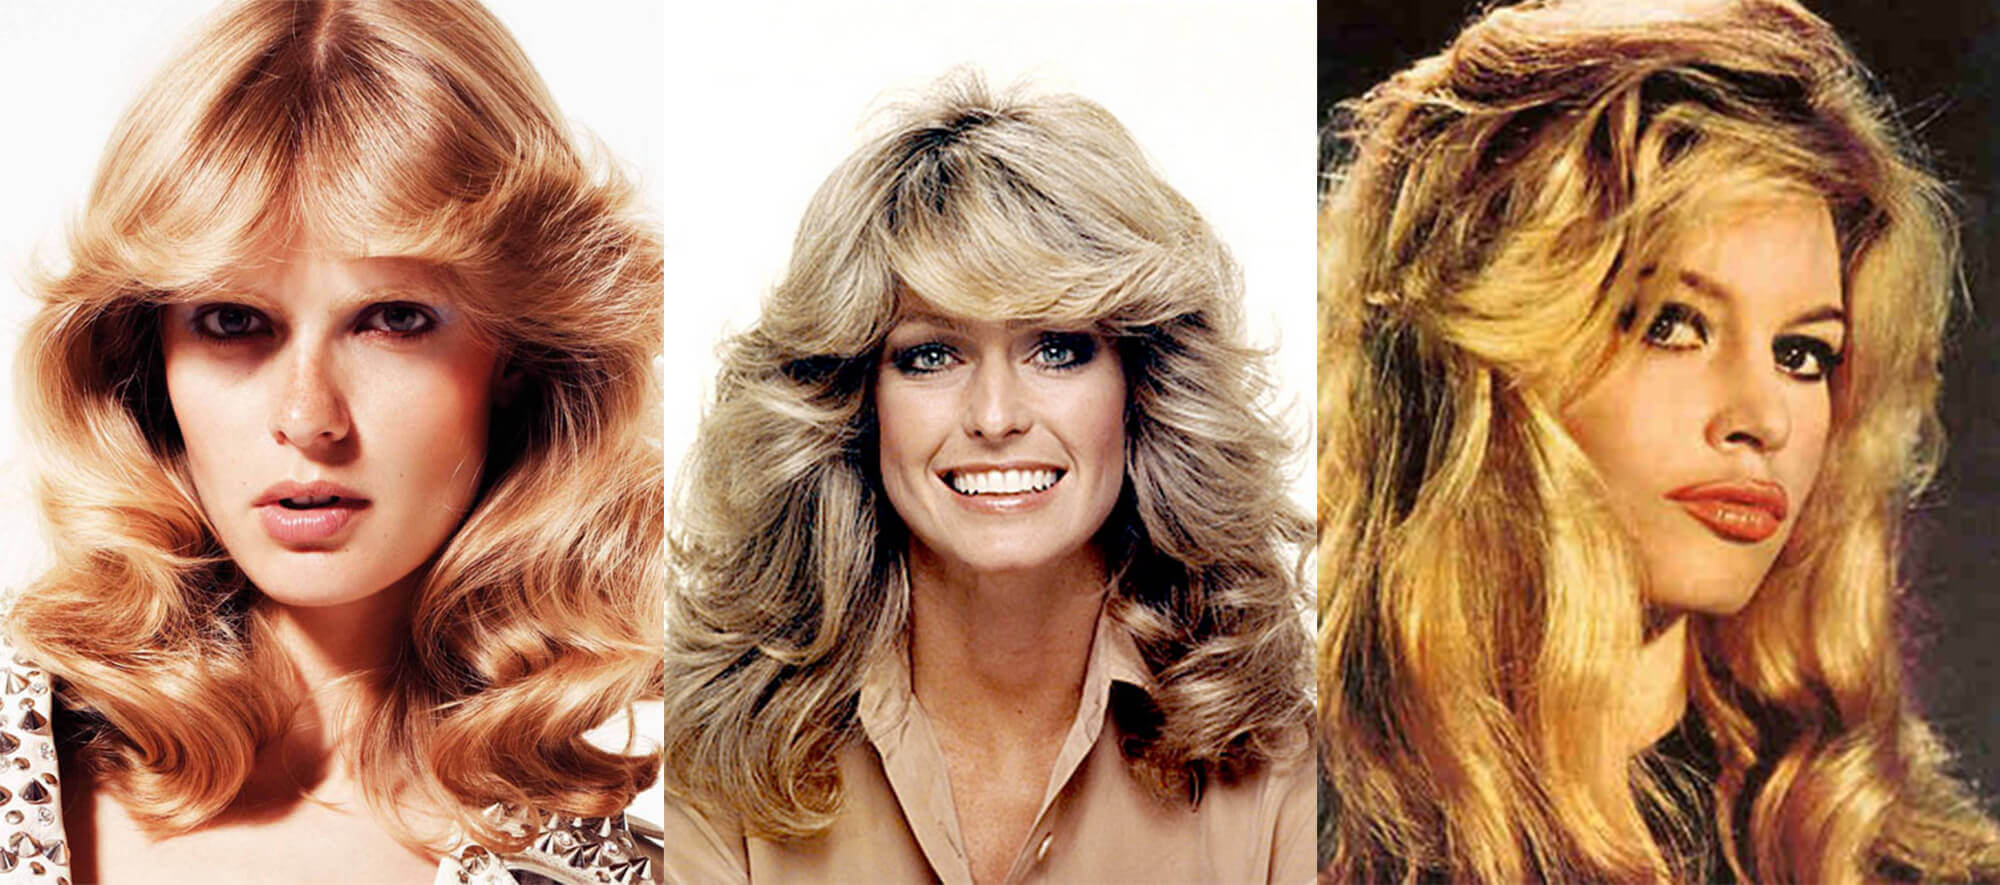 1970s hairstyle trends